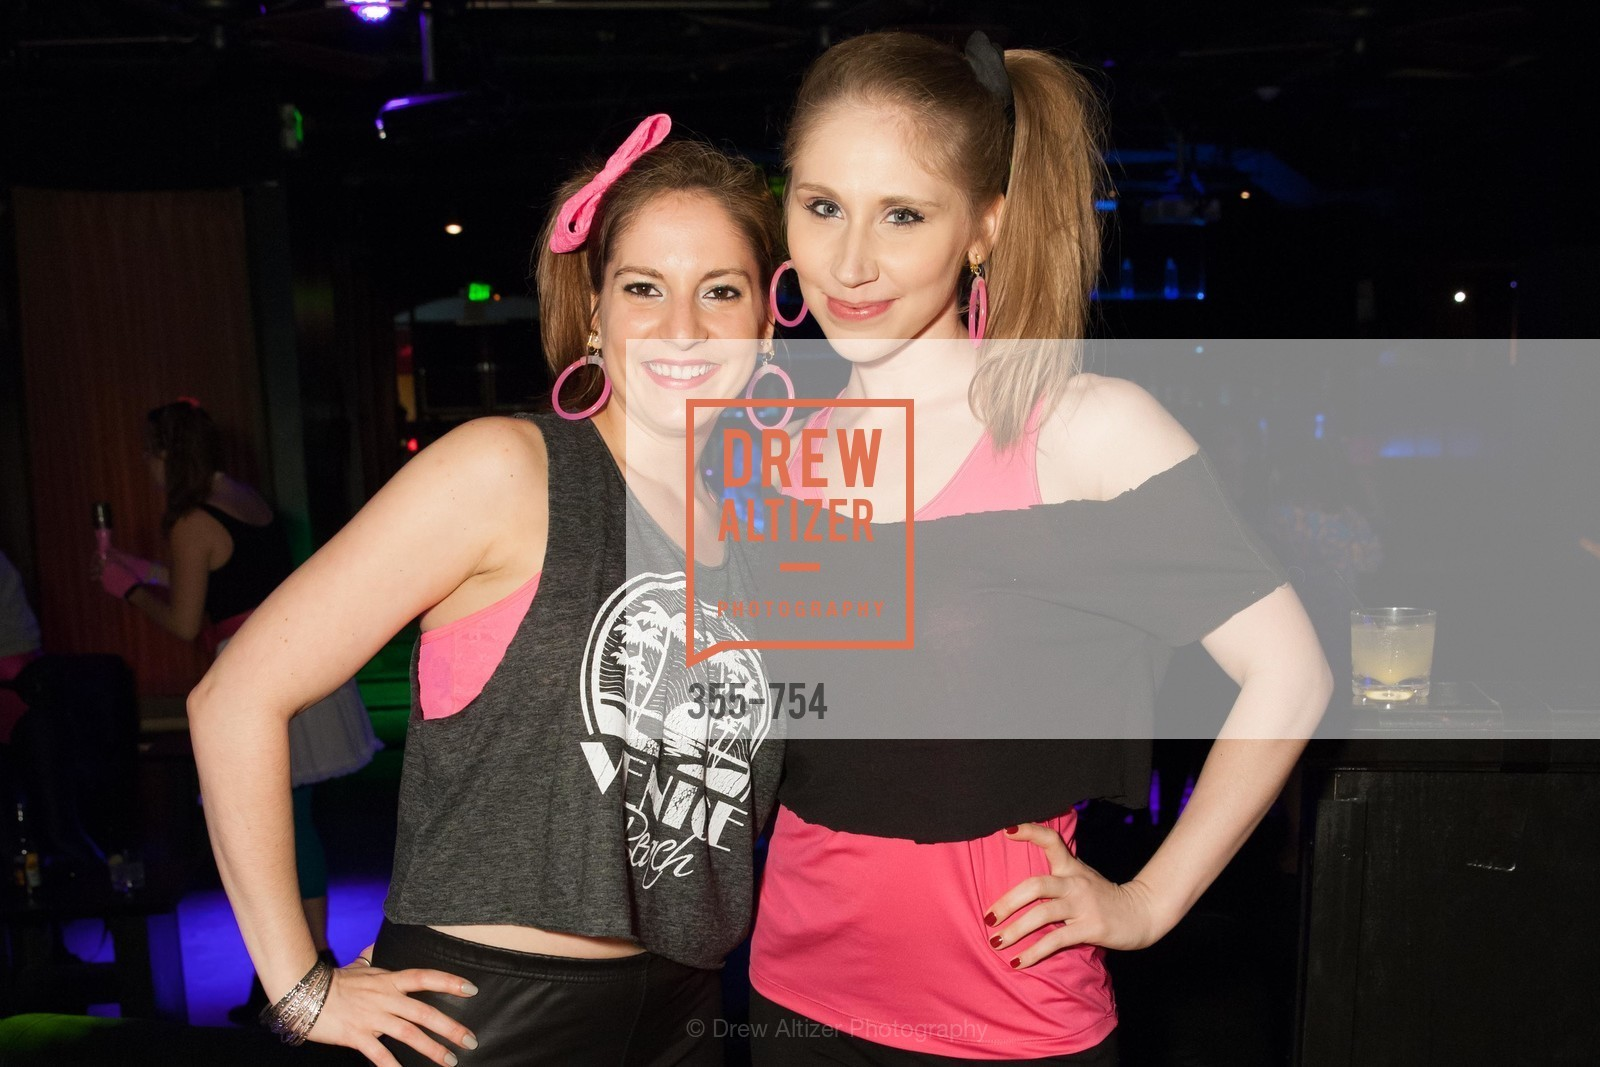 Sarah Frey, Danielle Stubrud, SPINSTERS OF SAN FRANCISCO Party Like It's 1985 Charity Party, US, May 29th, 2015,Drew Altizer, Drew Altizer Photography, full-service agency, private events, San Francisco photographer, photographer california